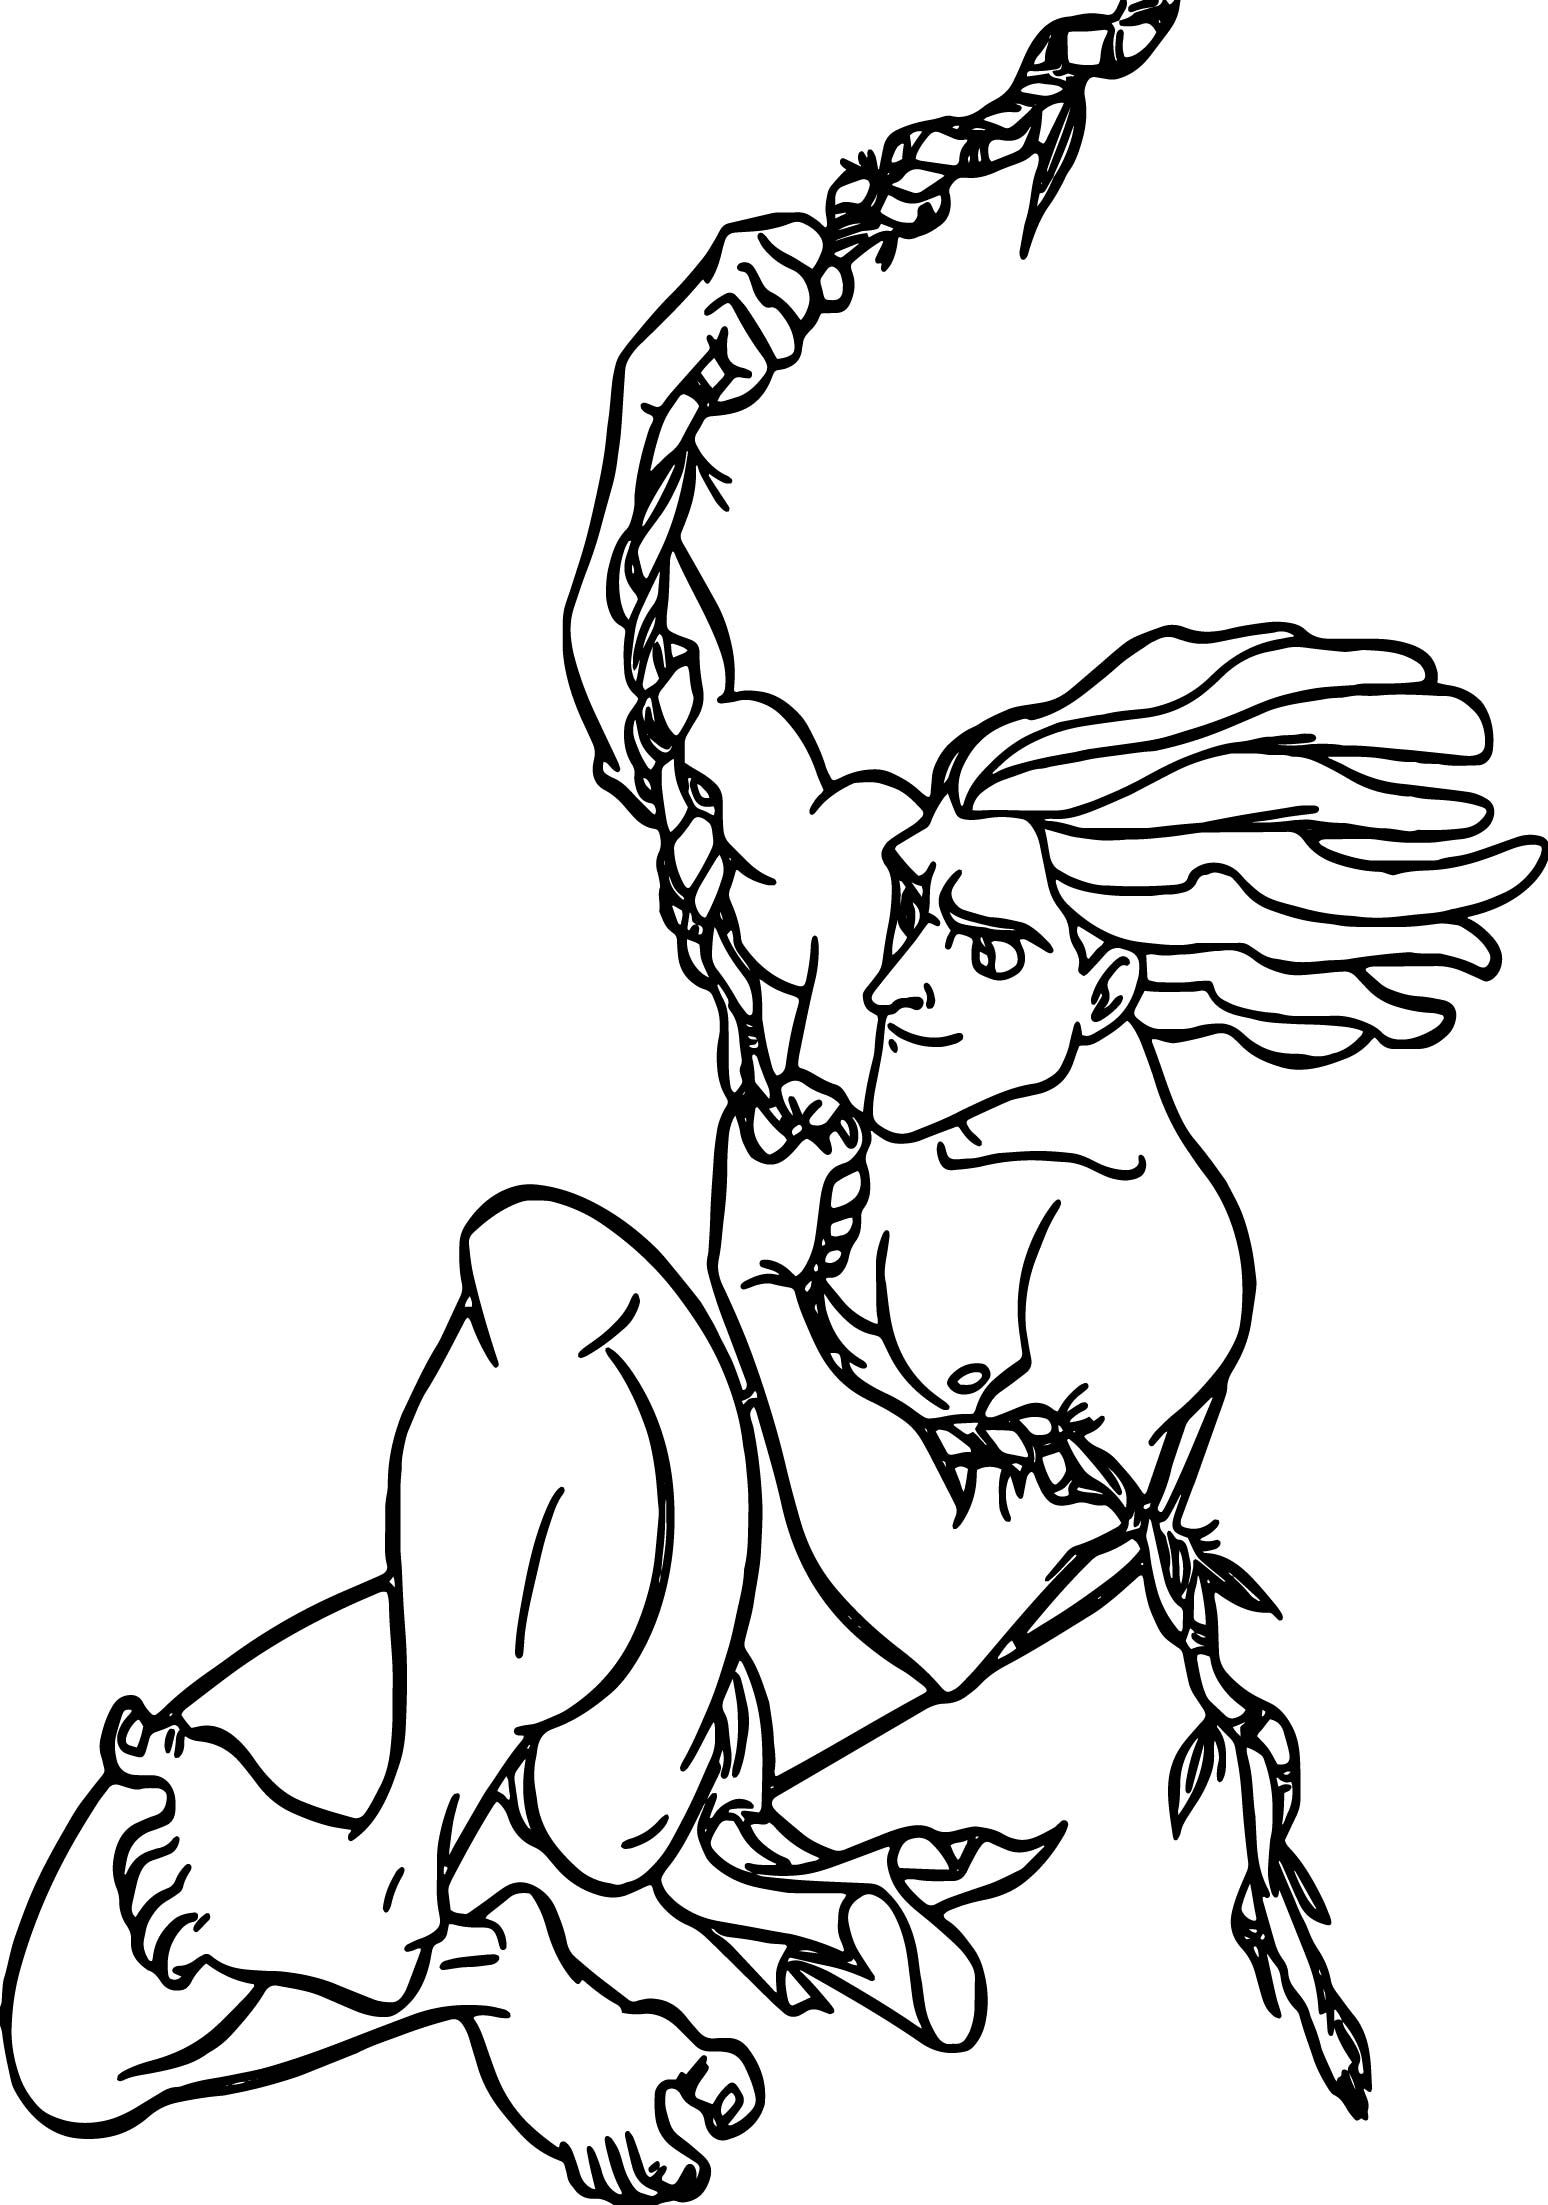 Nice Tarzan Vine Rope Coloring Page Coloring Pages Coloring